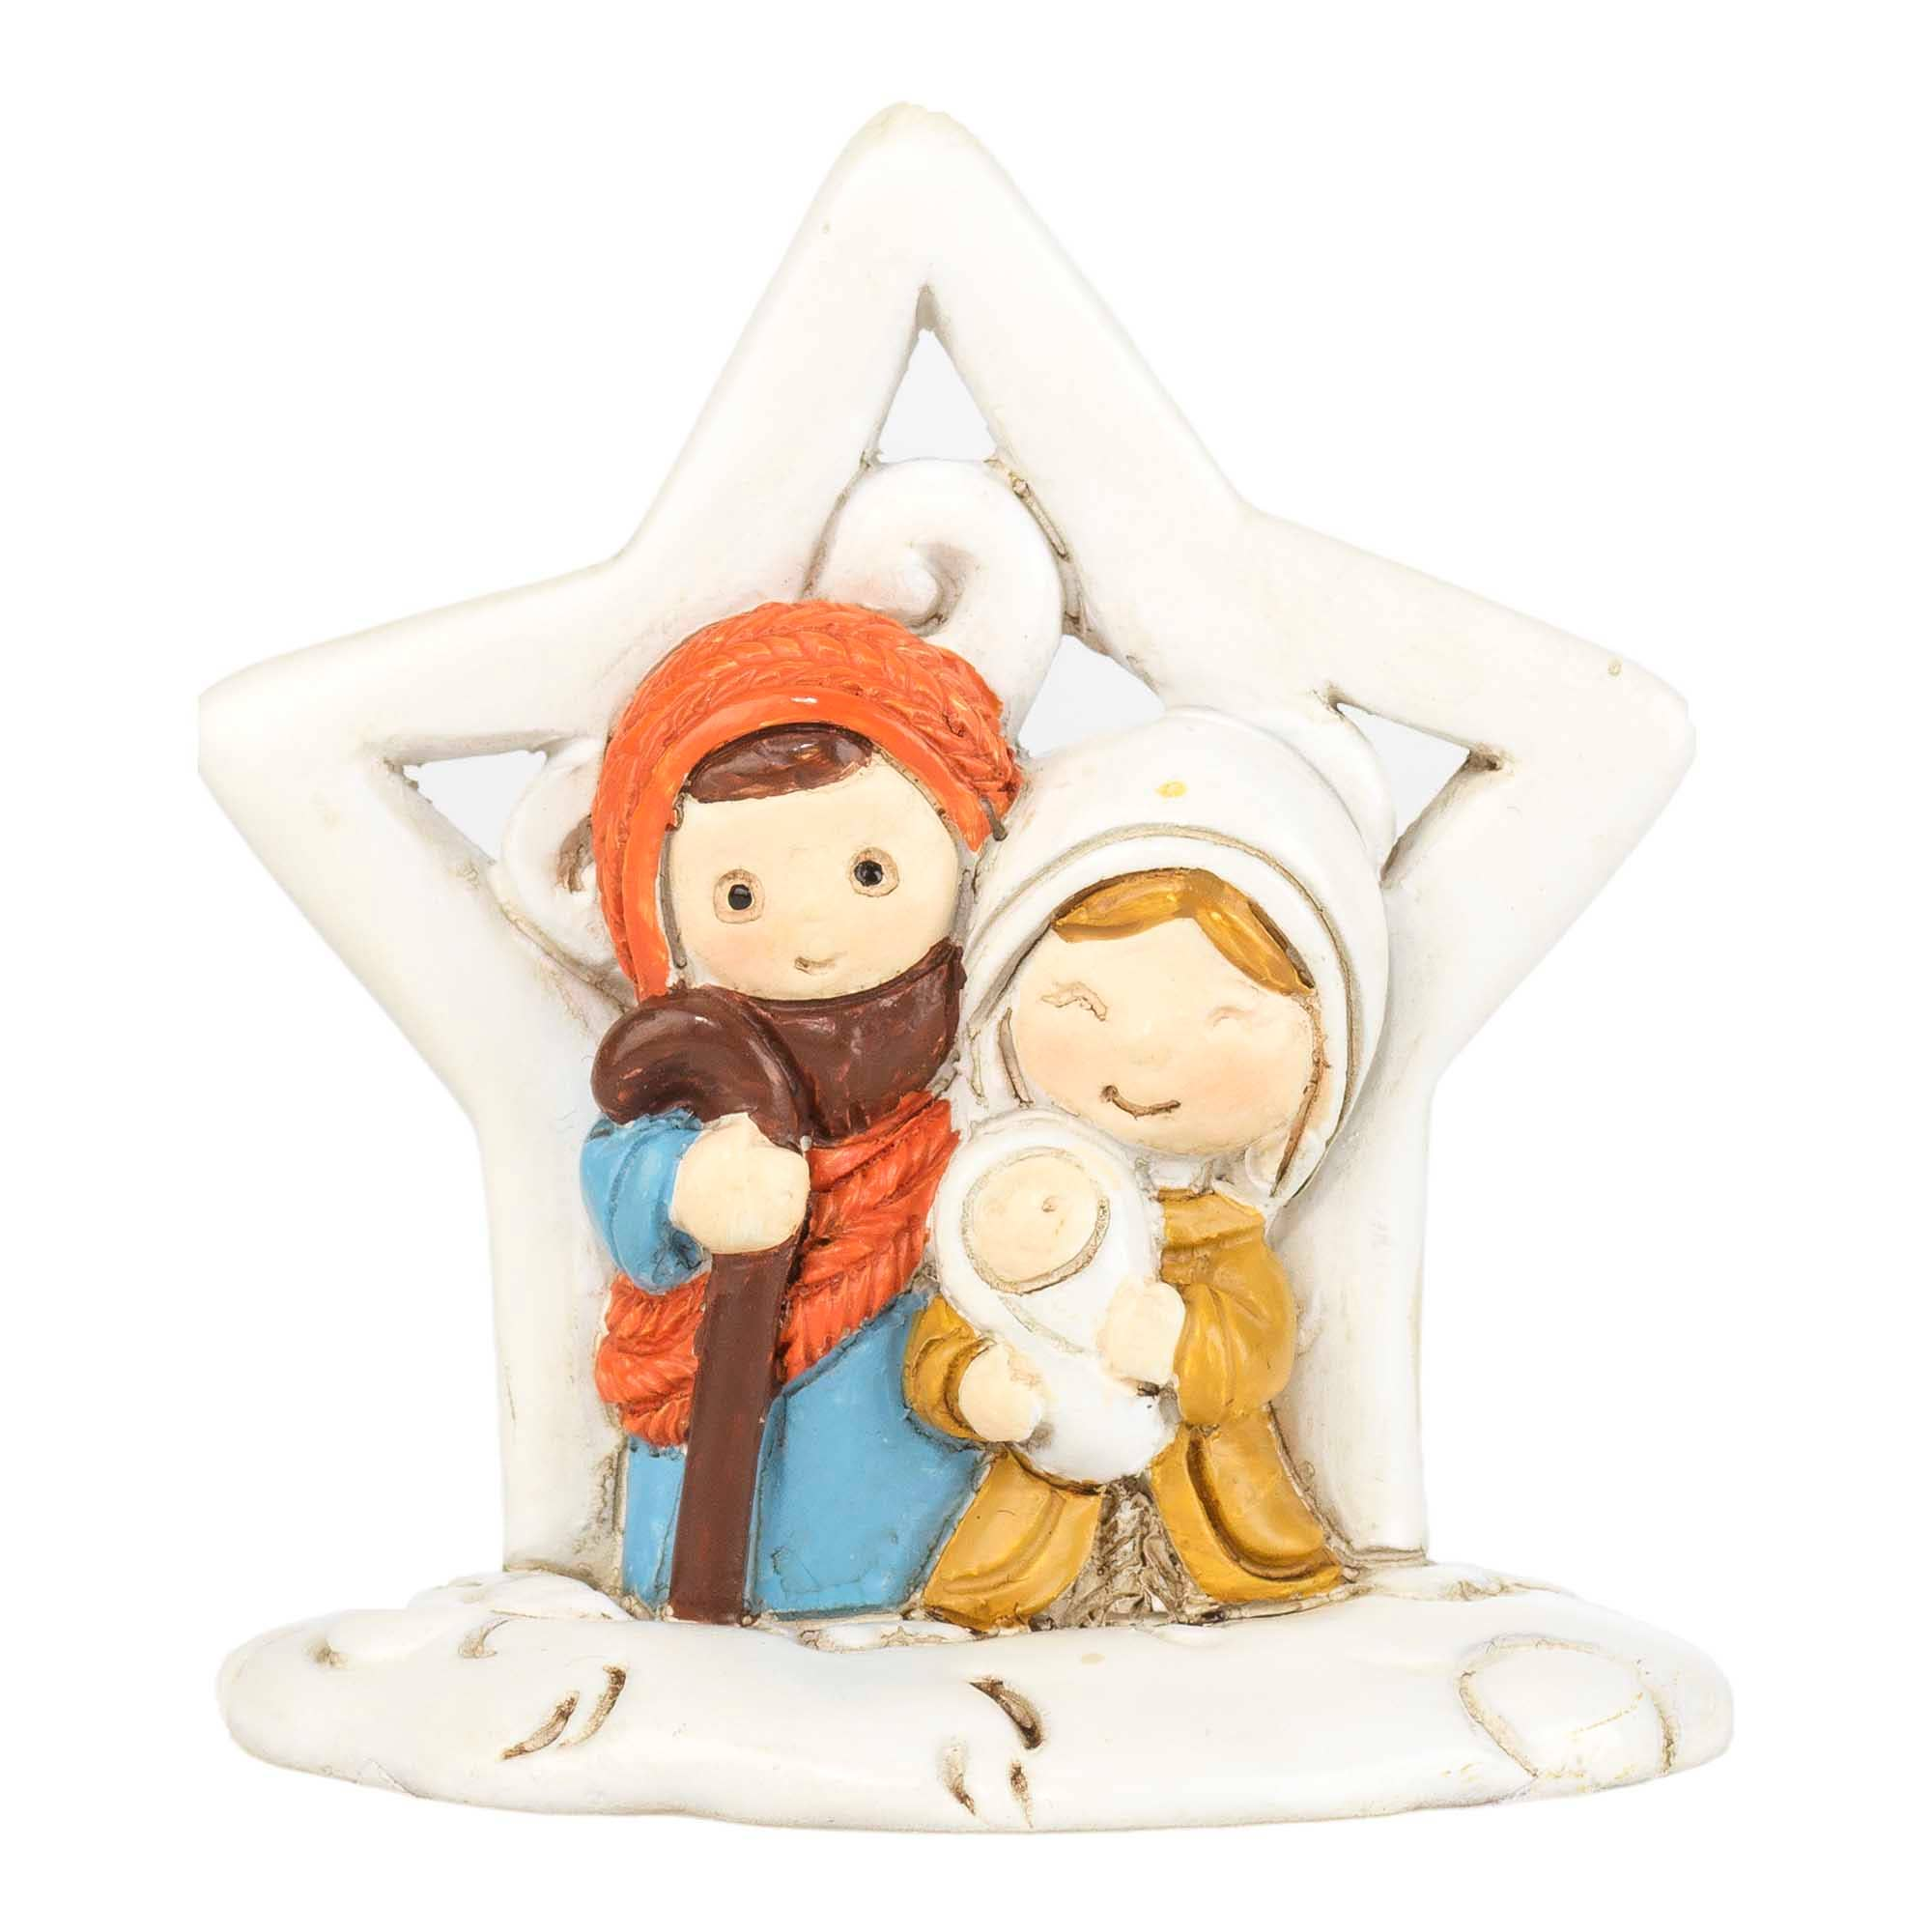 Dicksons Whimsical Holy Family with Creche Scene Resin 3.5 Inch Christmas Nativity Water Globe